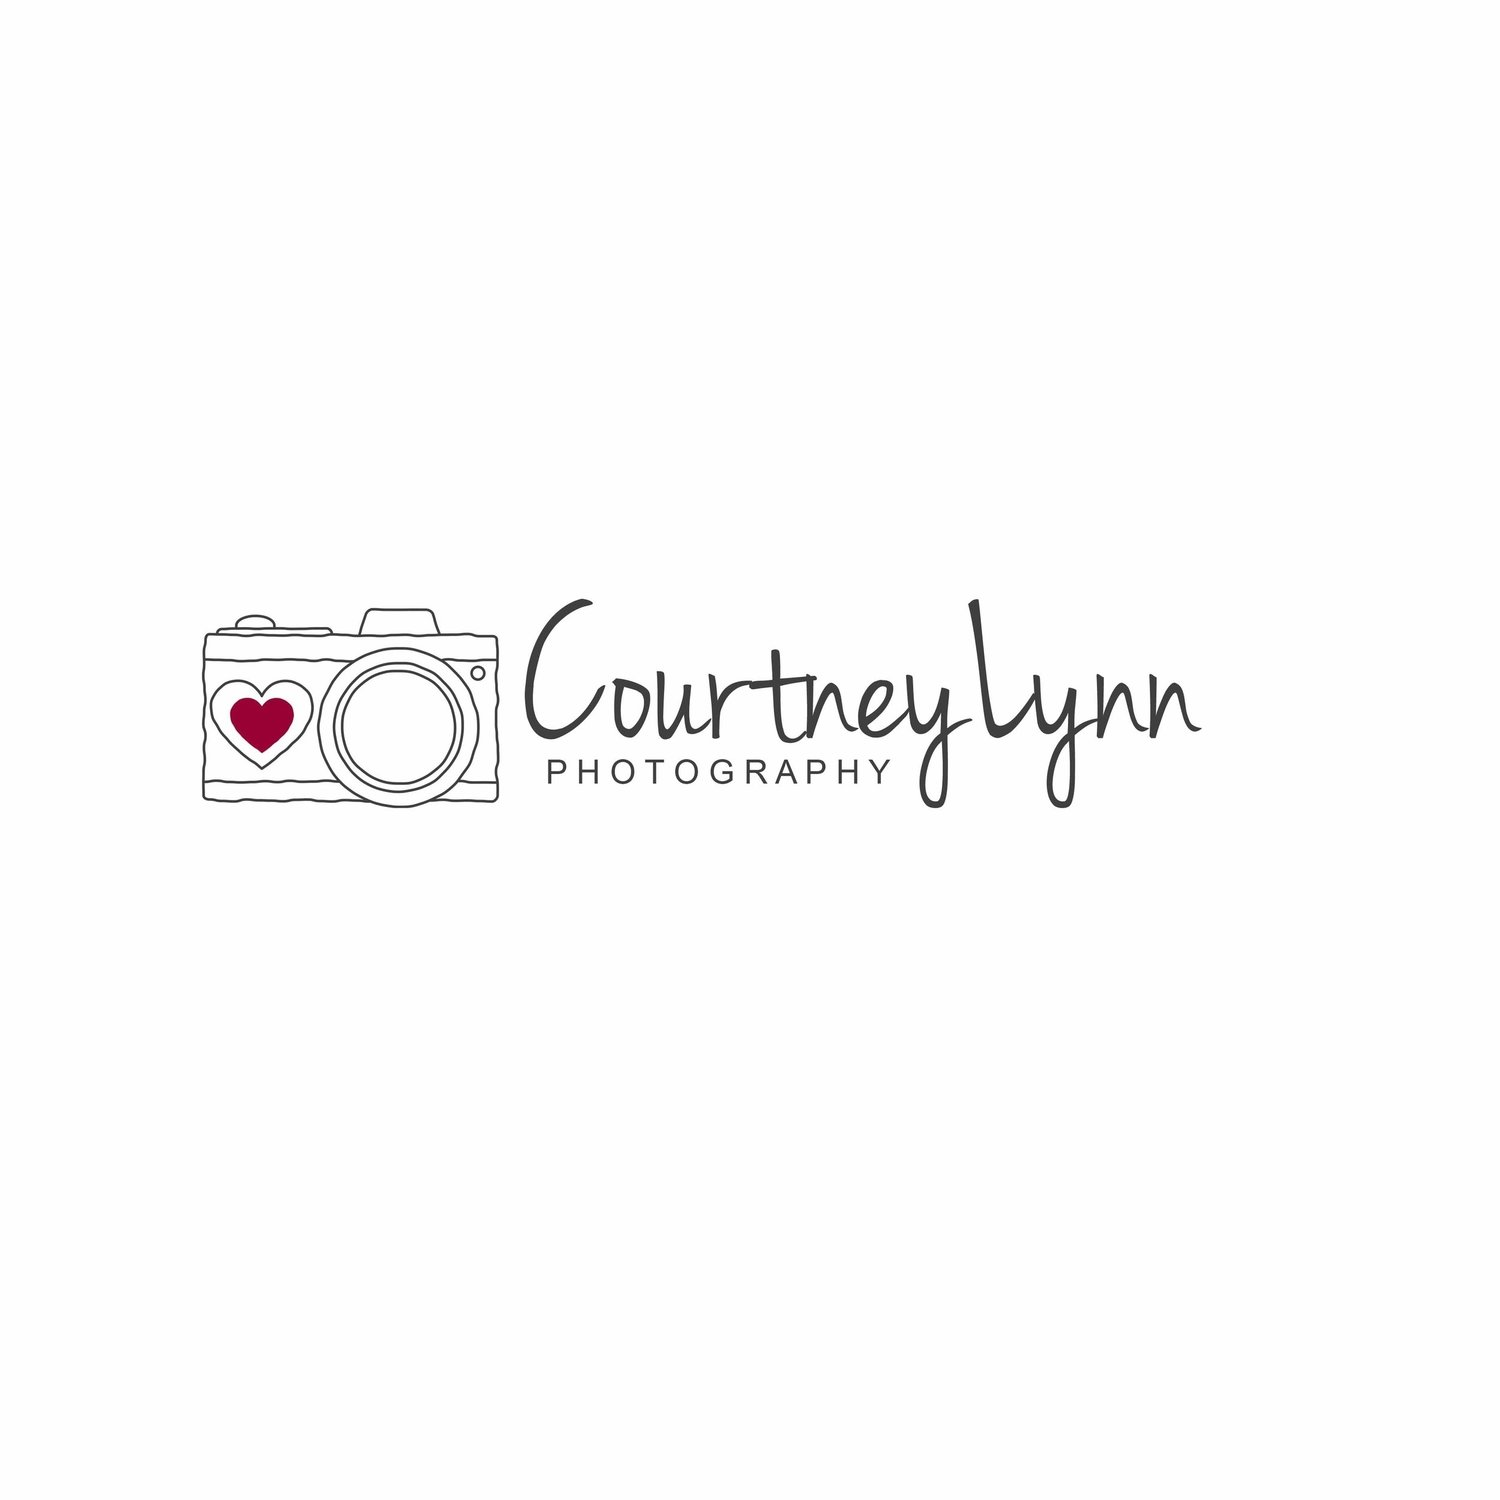 Courtney Lynn Photography L.L.C.